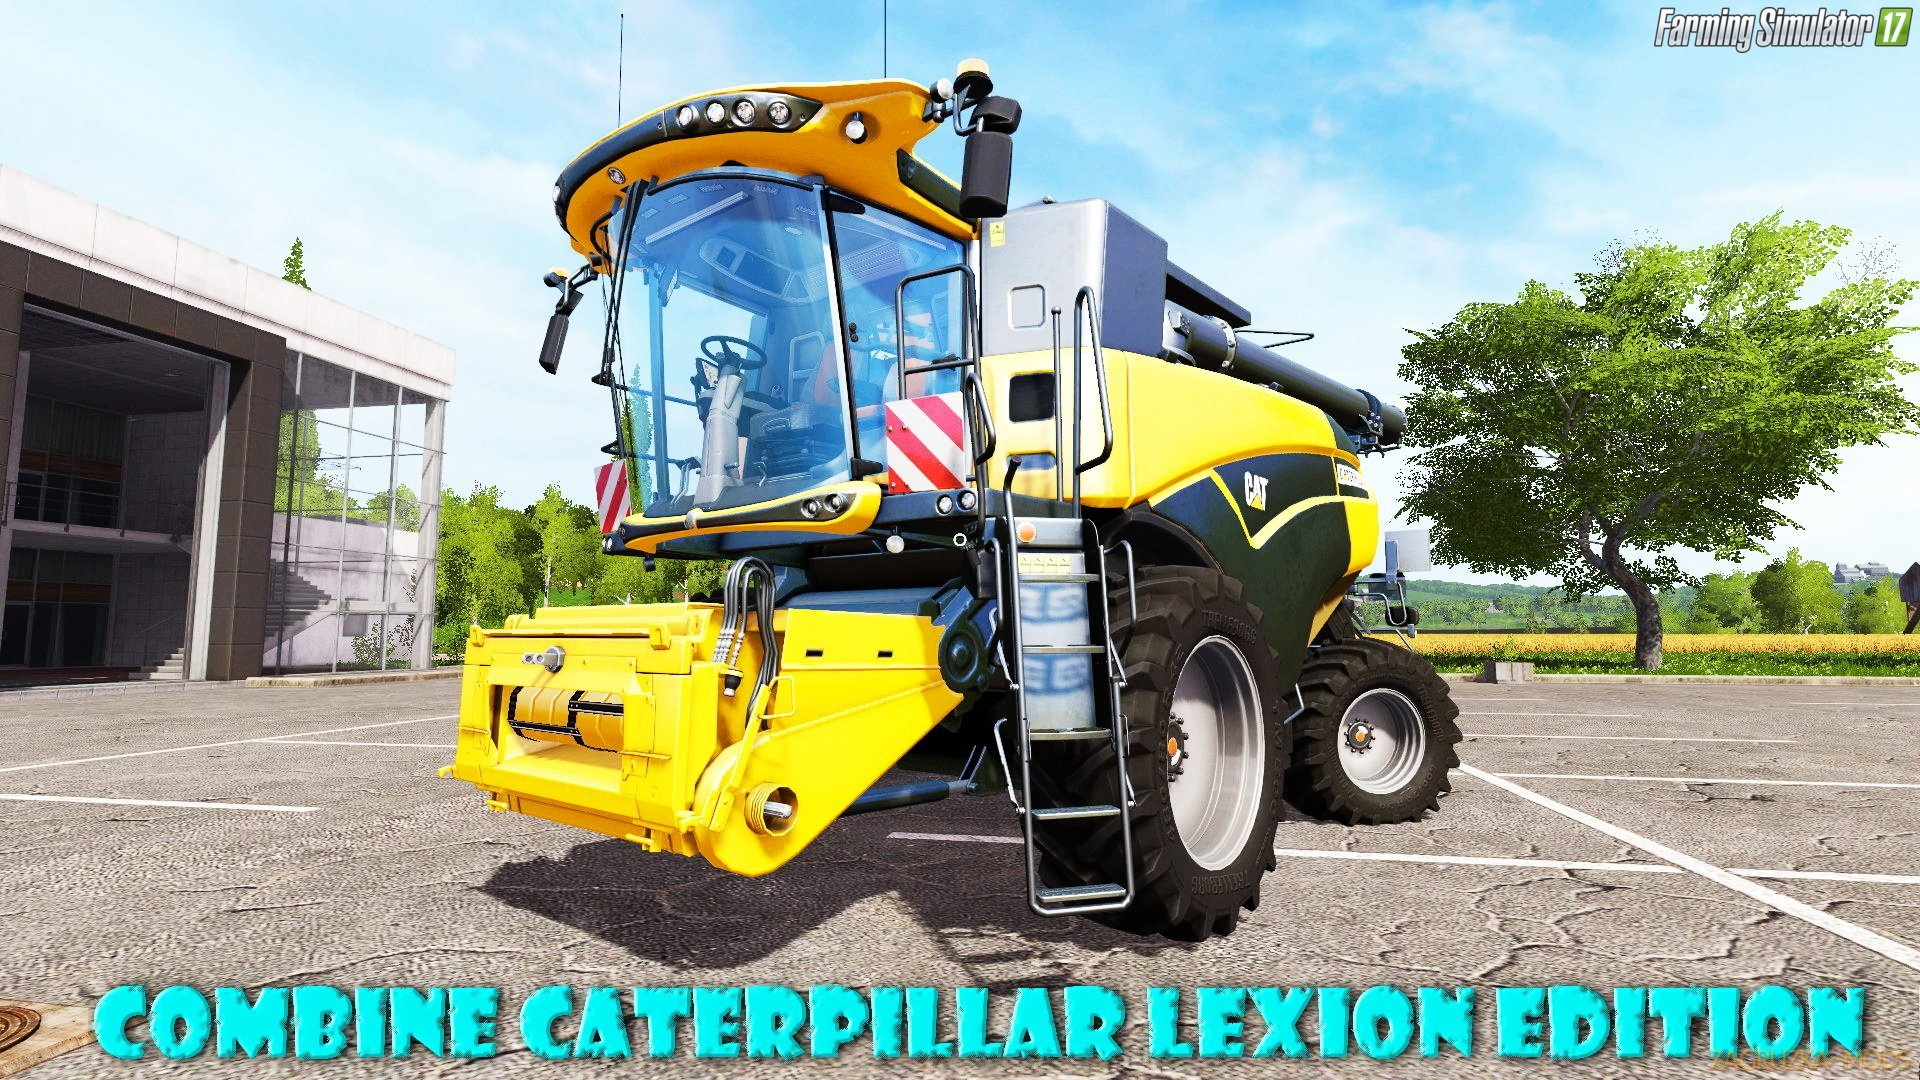 Caterpillar Lexion Edition v1.0 for FS 17